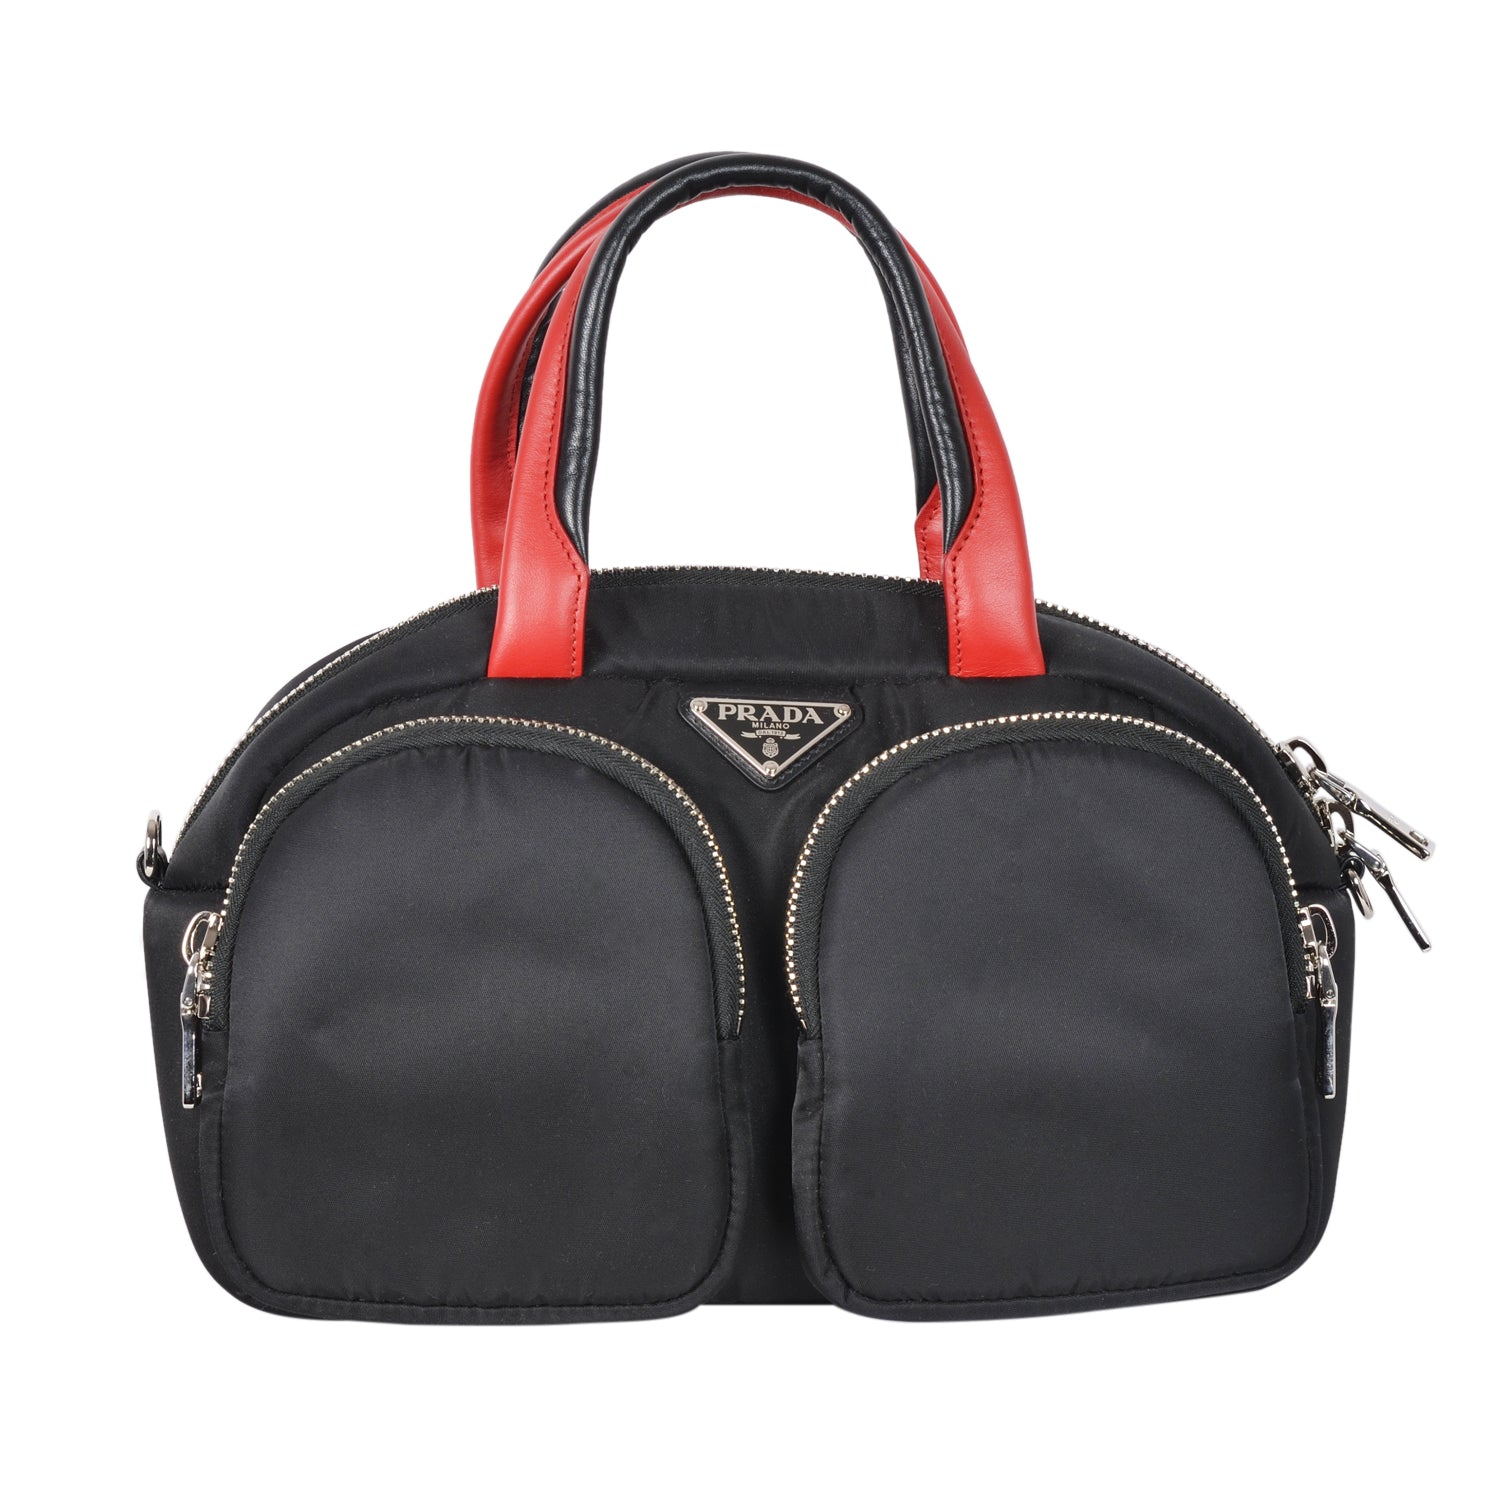 Prada black & fiery red small top-handle bag in cruelty free nylon material. | Shop Luxury Handbag Online